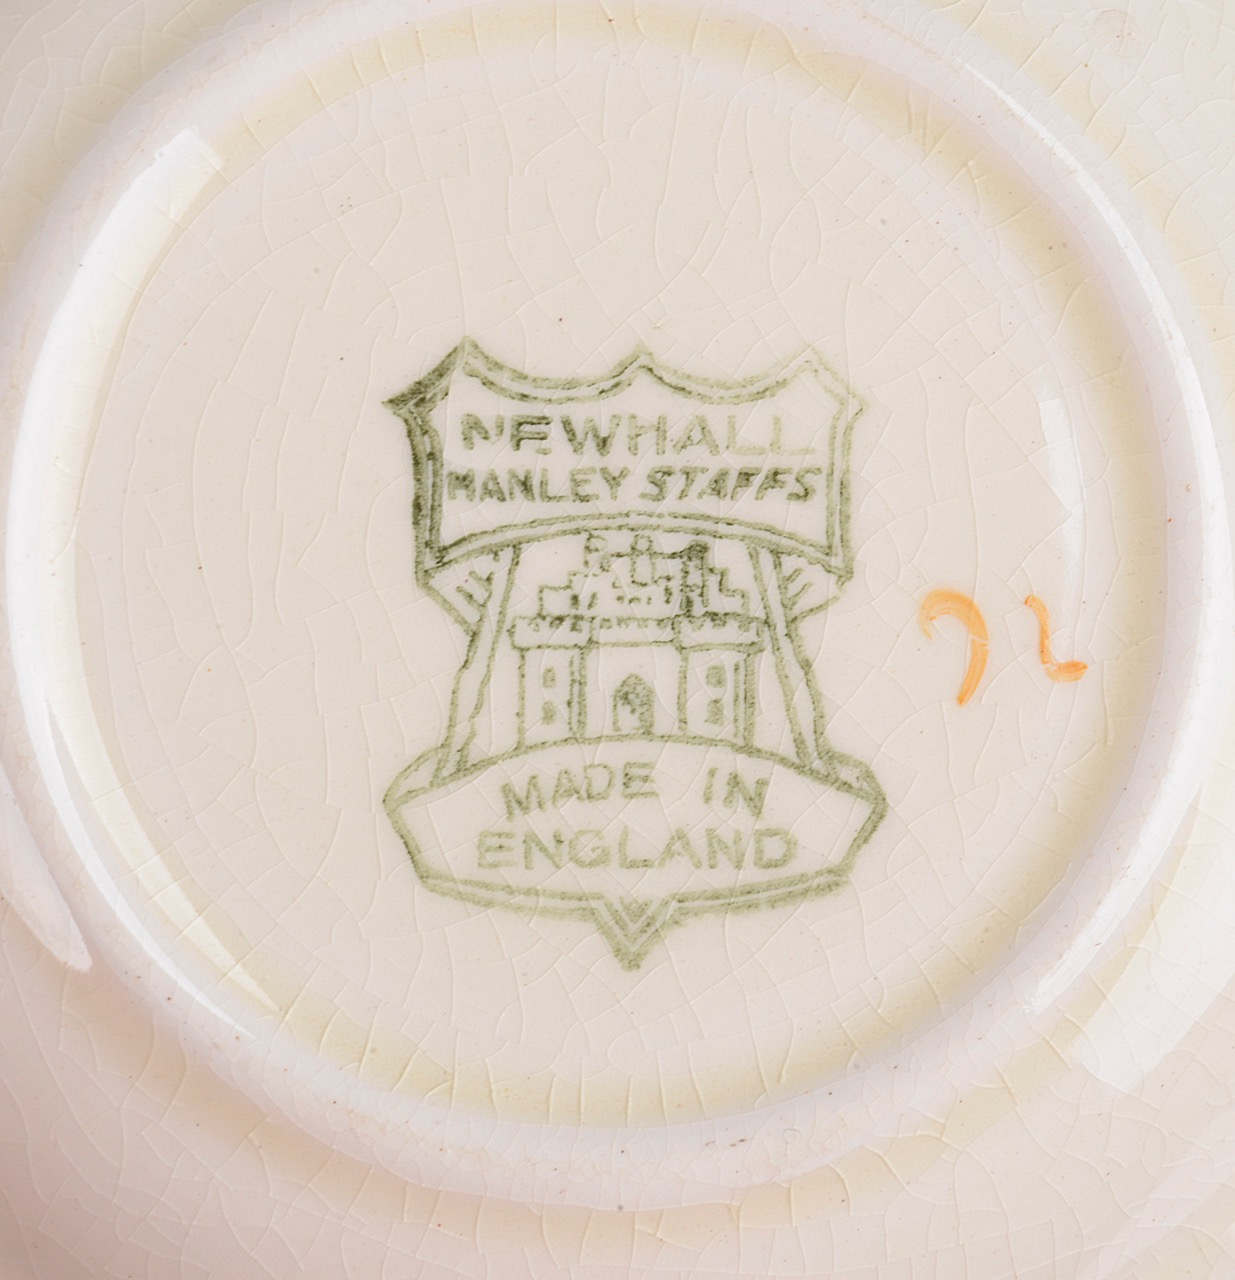 Lot 27 - A Newhall porcelain coffee service